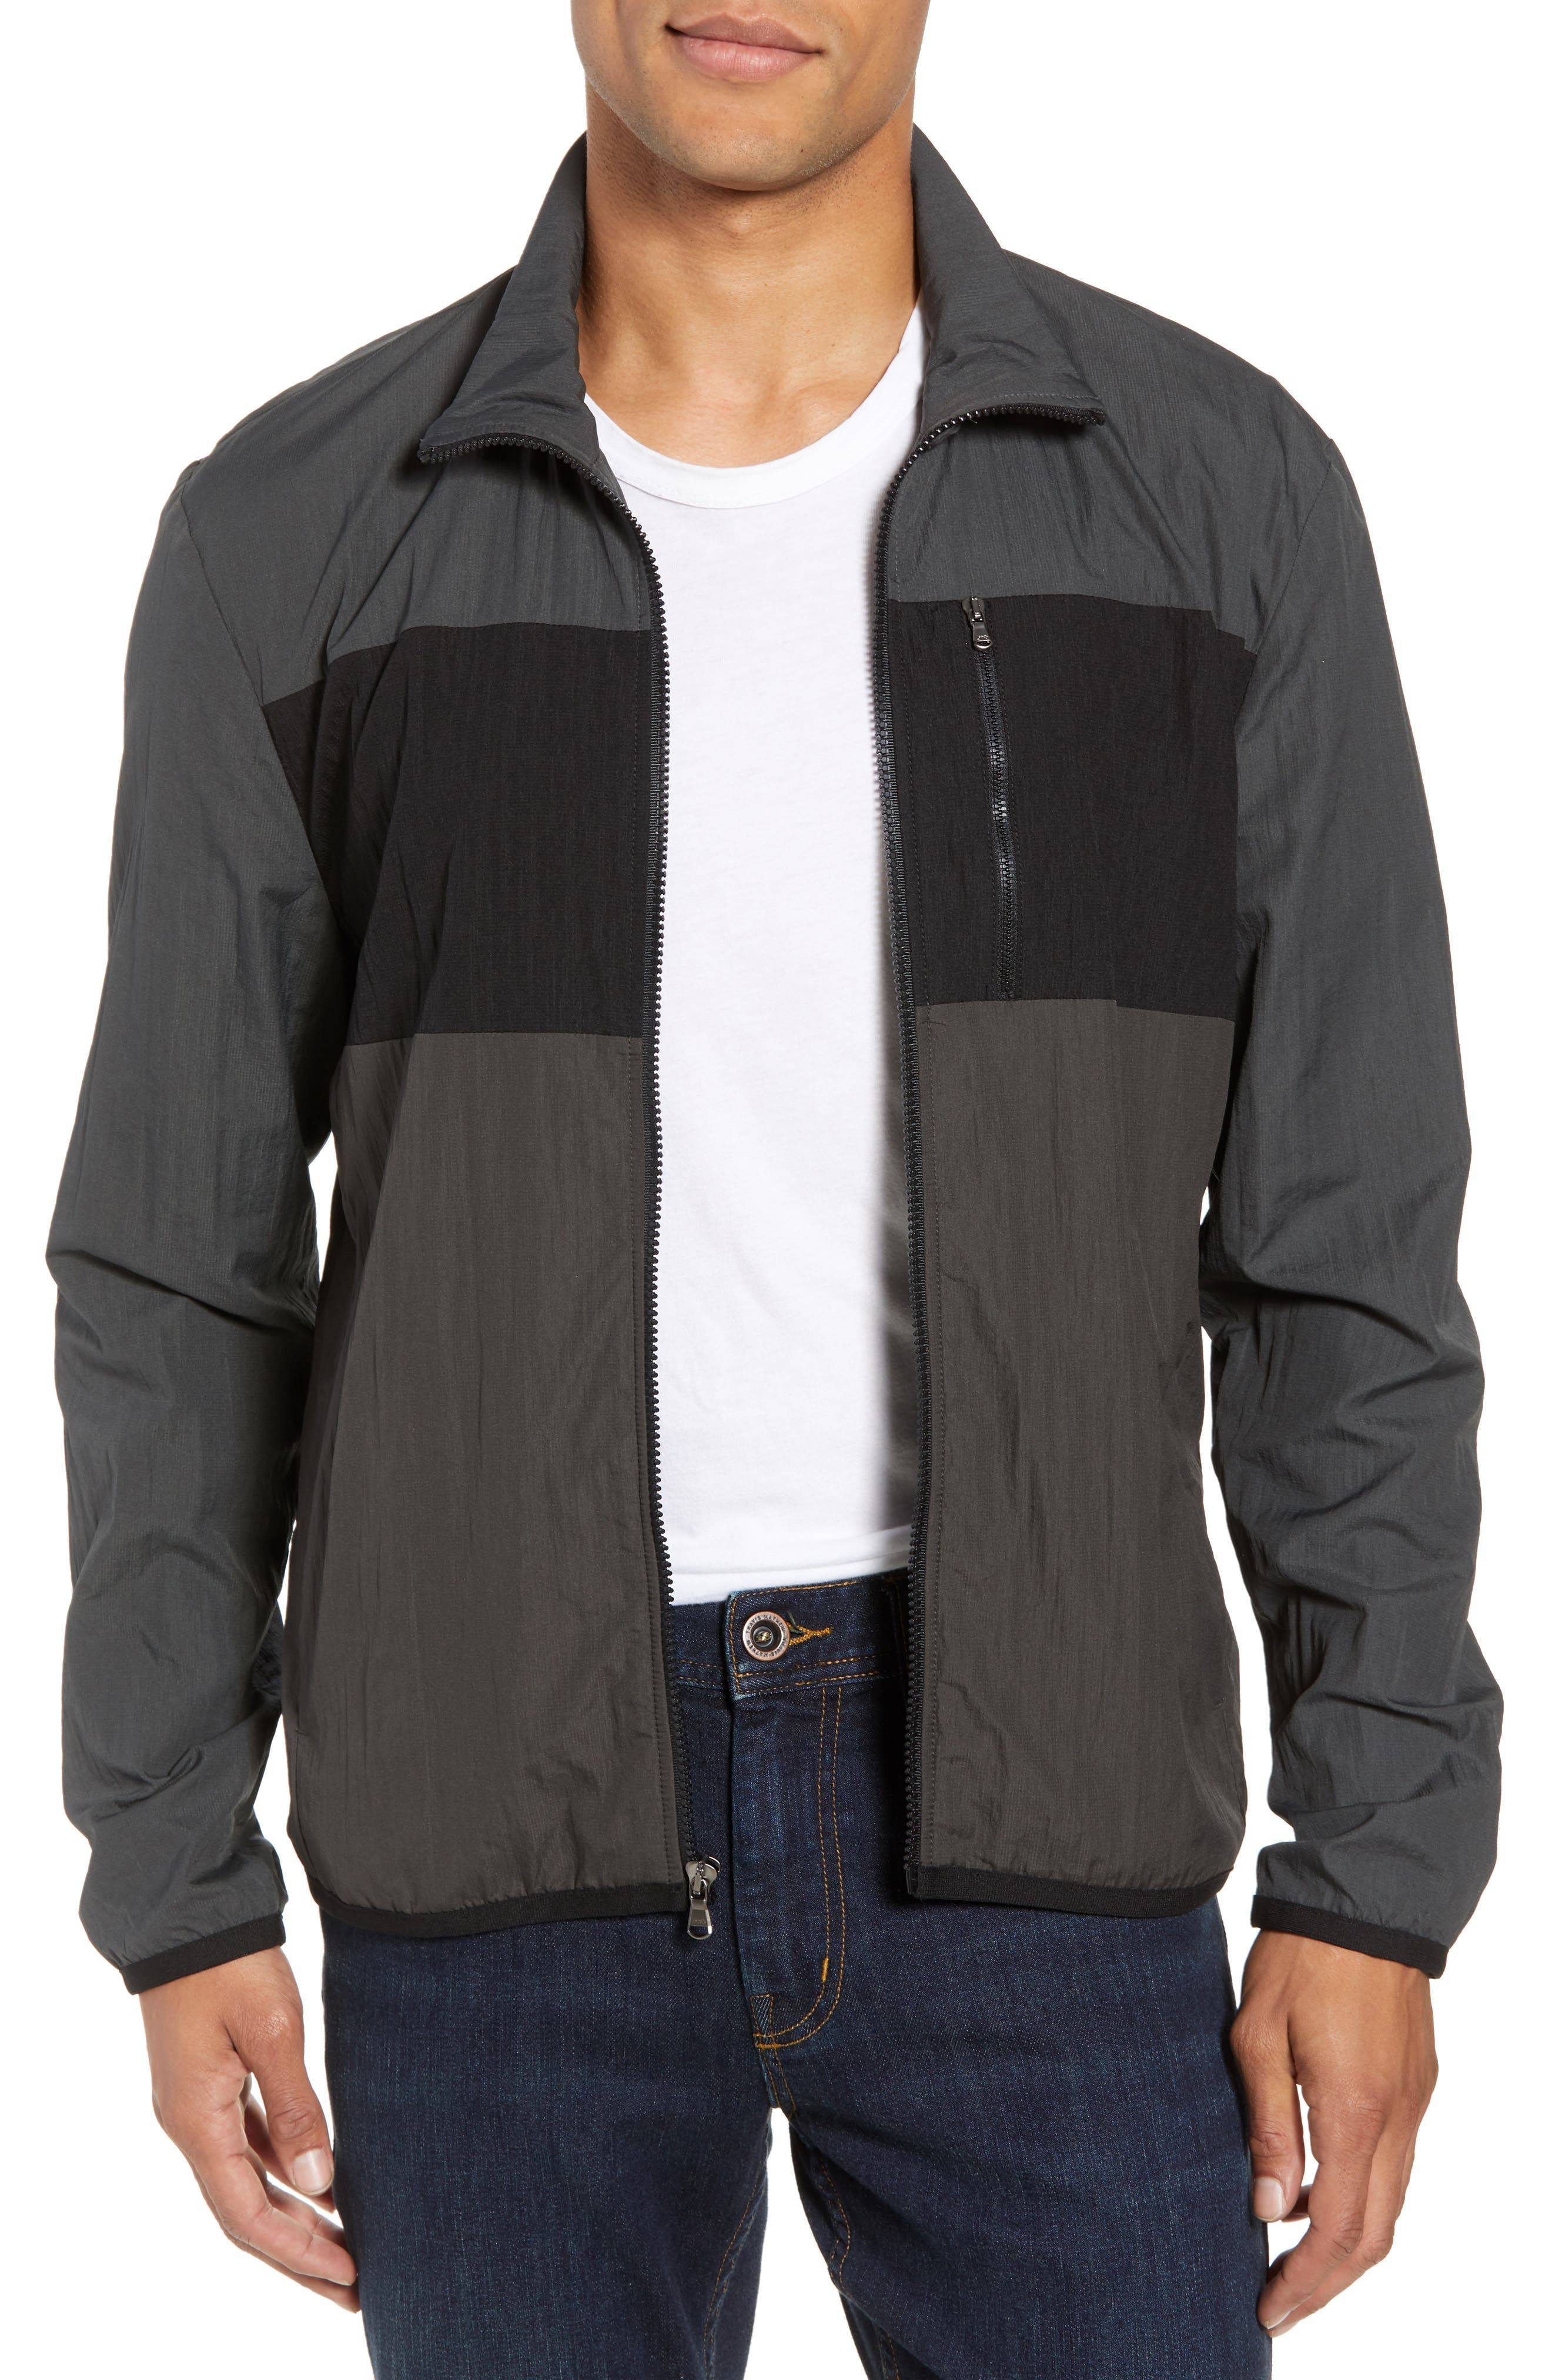 Stripe Ripstop Jacket,                             Main thumbnail 1, color,                             Pipe/ Black/ Abyss